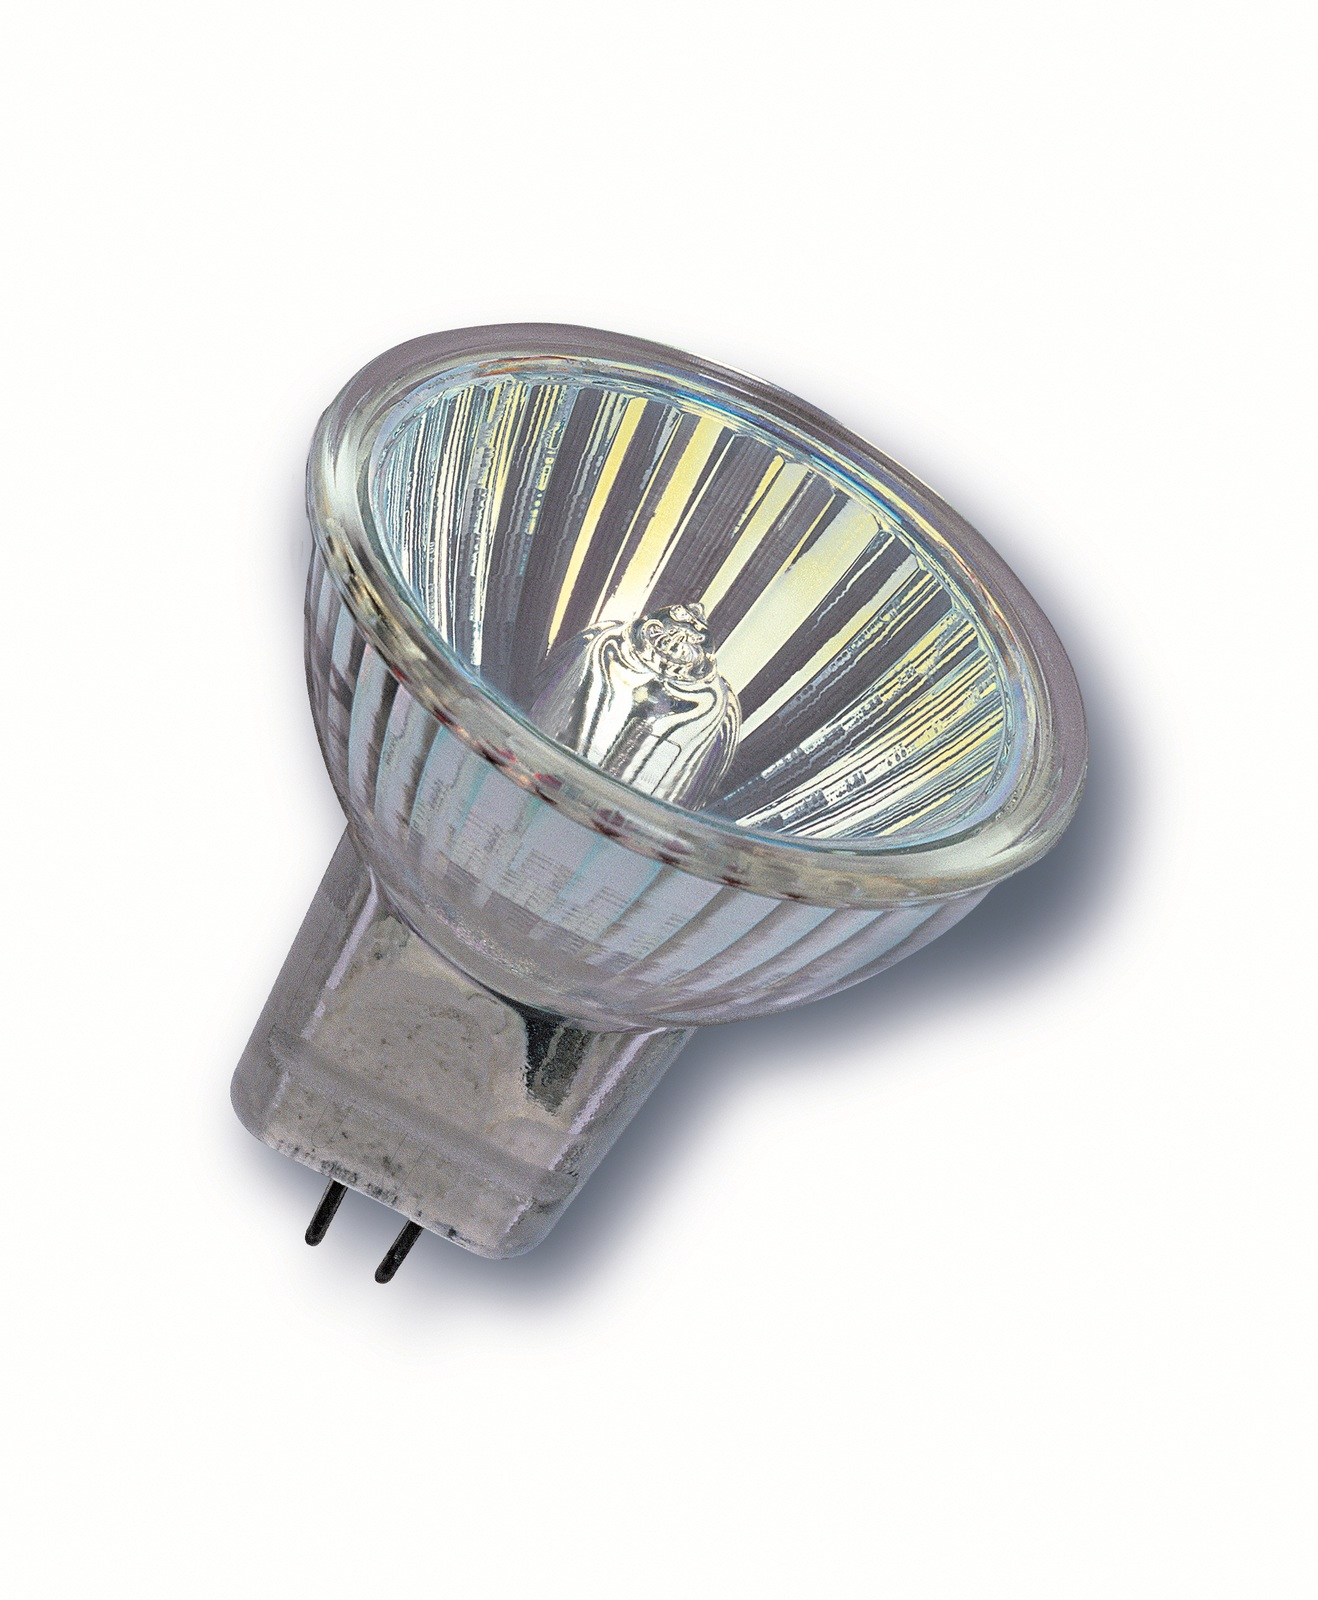 Osram Decostar 35 Eco Star 25W 12v GU4 36